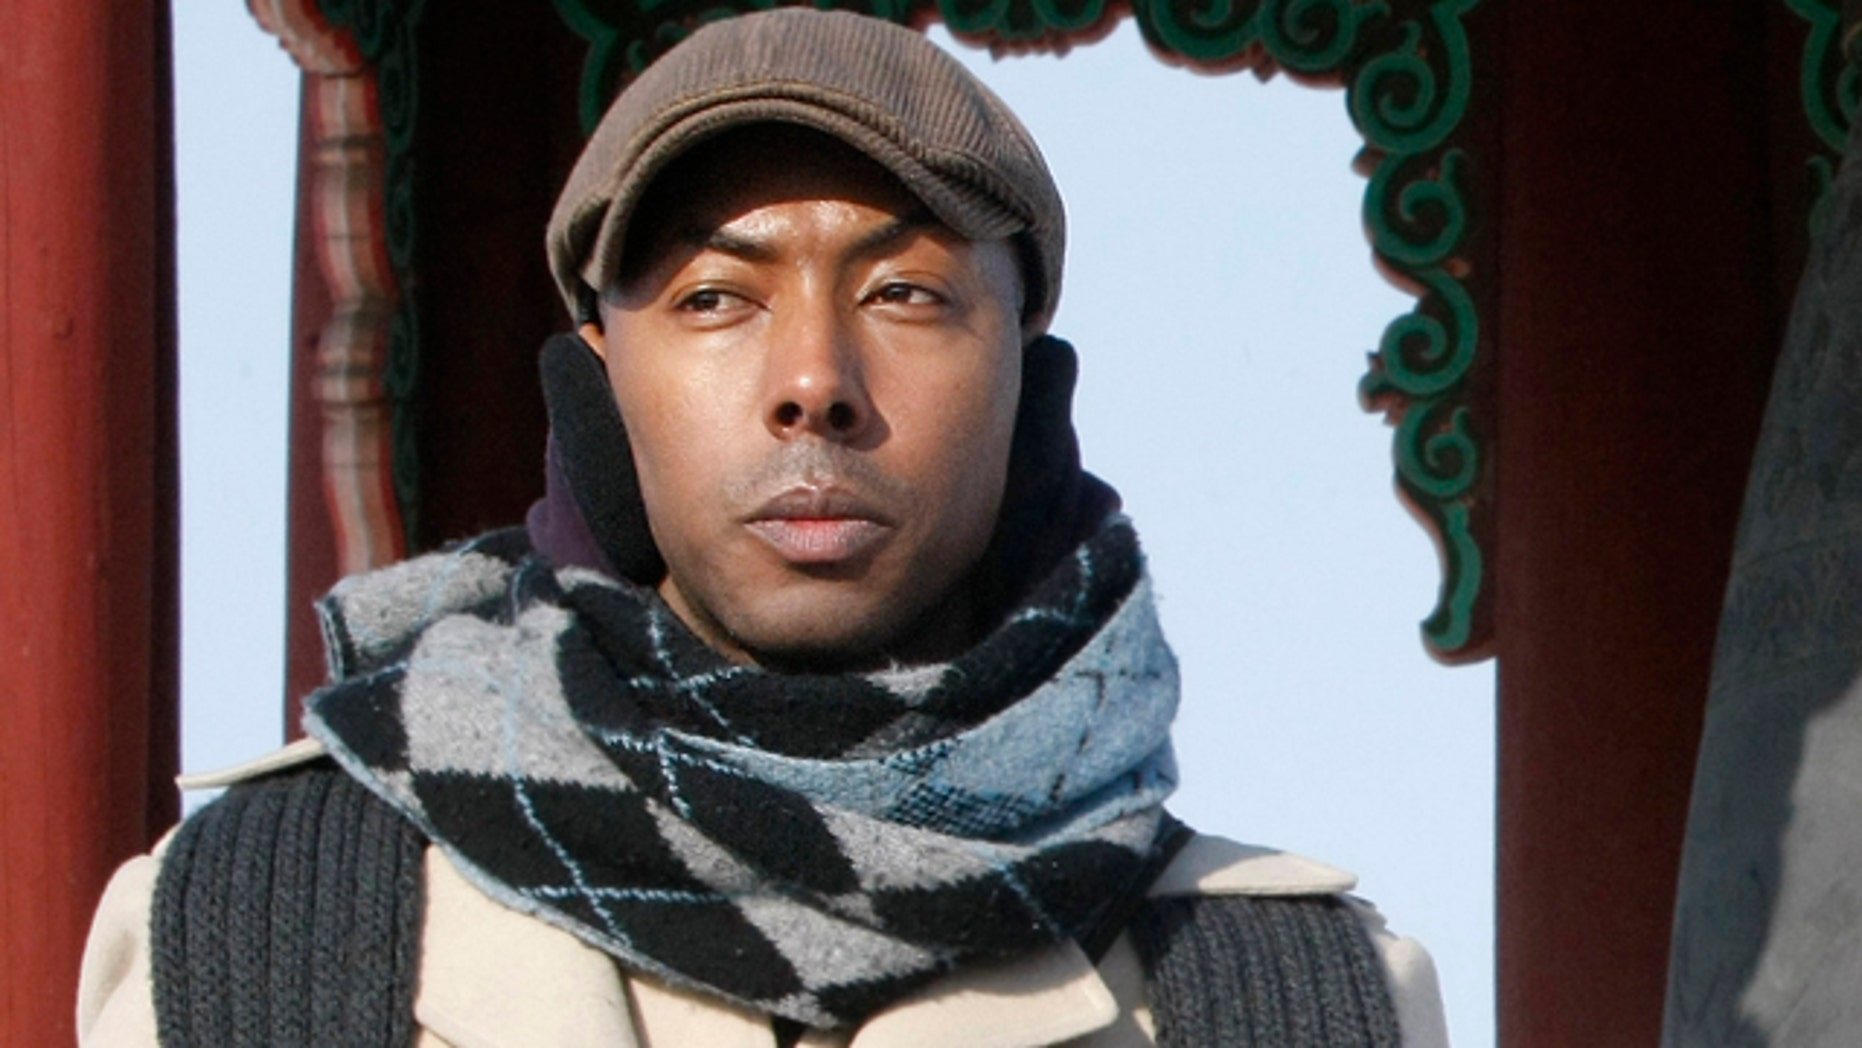 A Jan. 12, 2010, file photo shows American Aijalon Mahli Gomes, during a rally denouncing North Korean's human rights conditions at the Imjingak Pavilion, near the demilitarized zone (DMZ) of Panmunjom that separates the two Koreas.